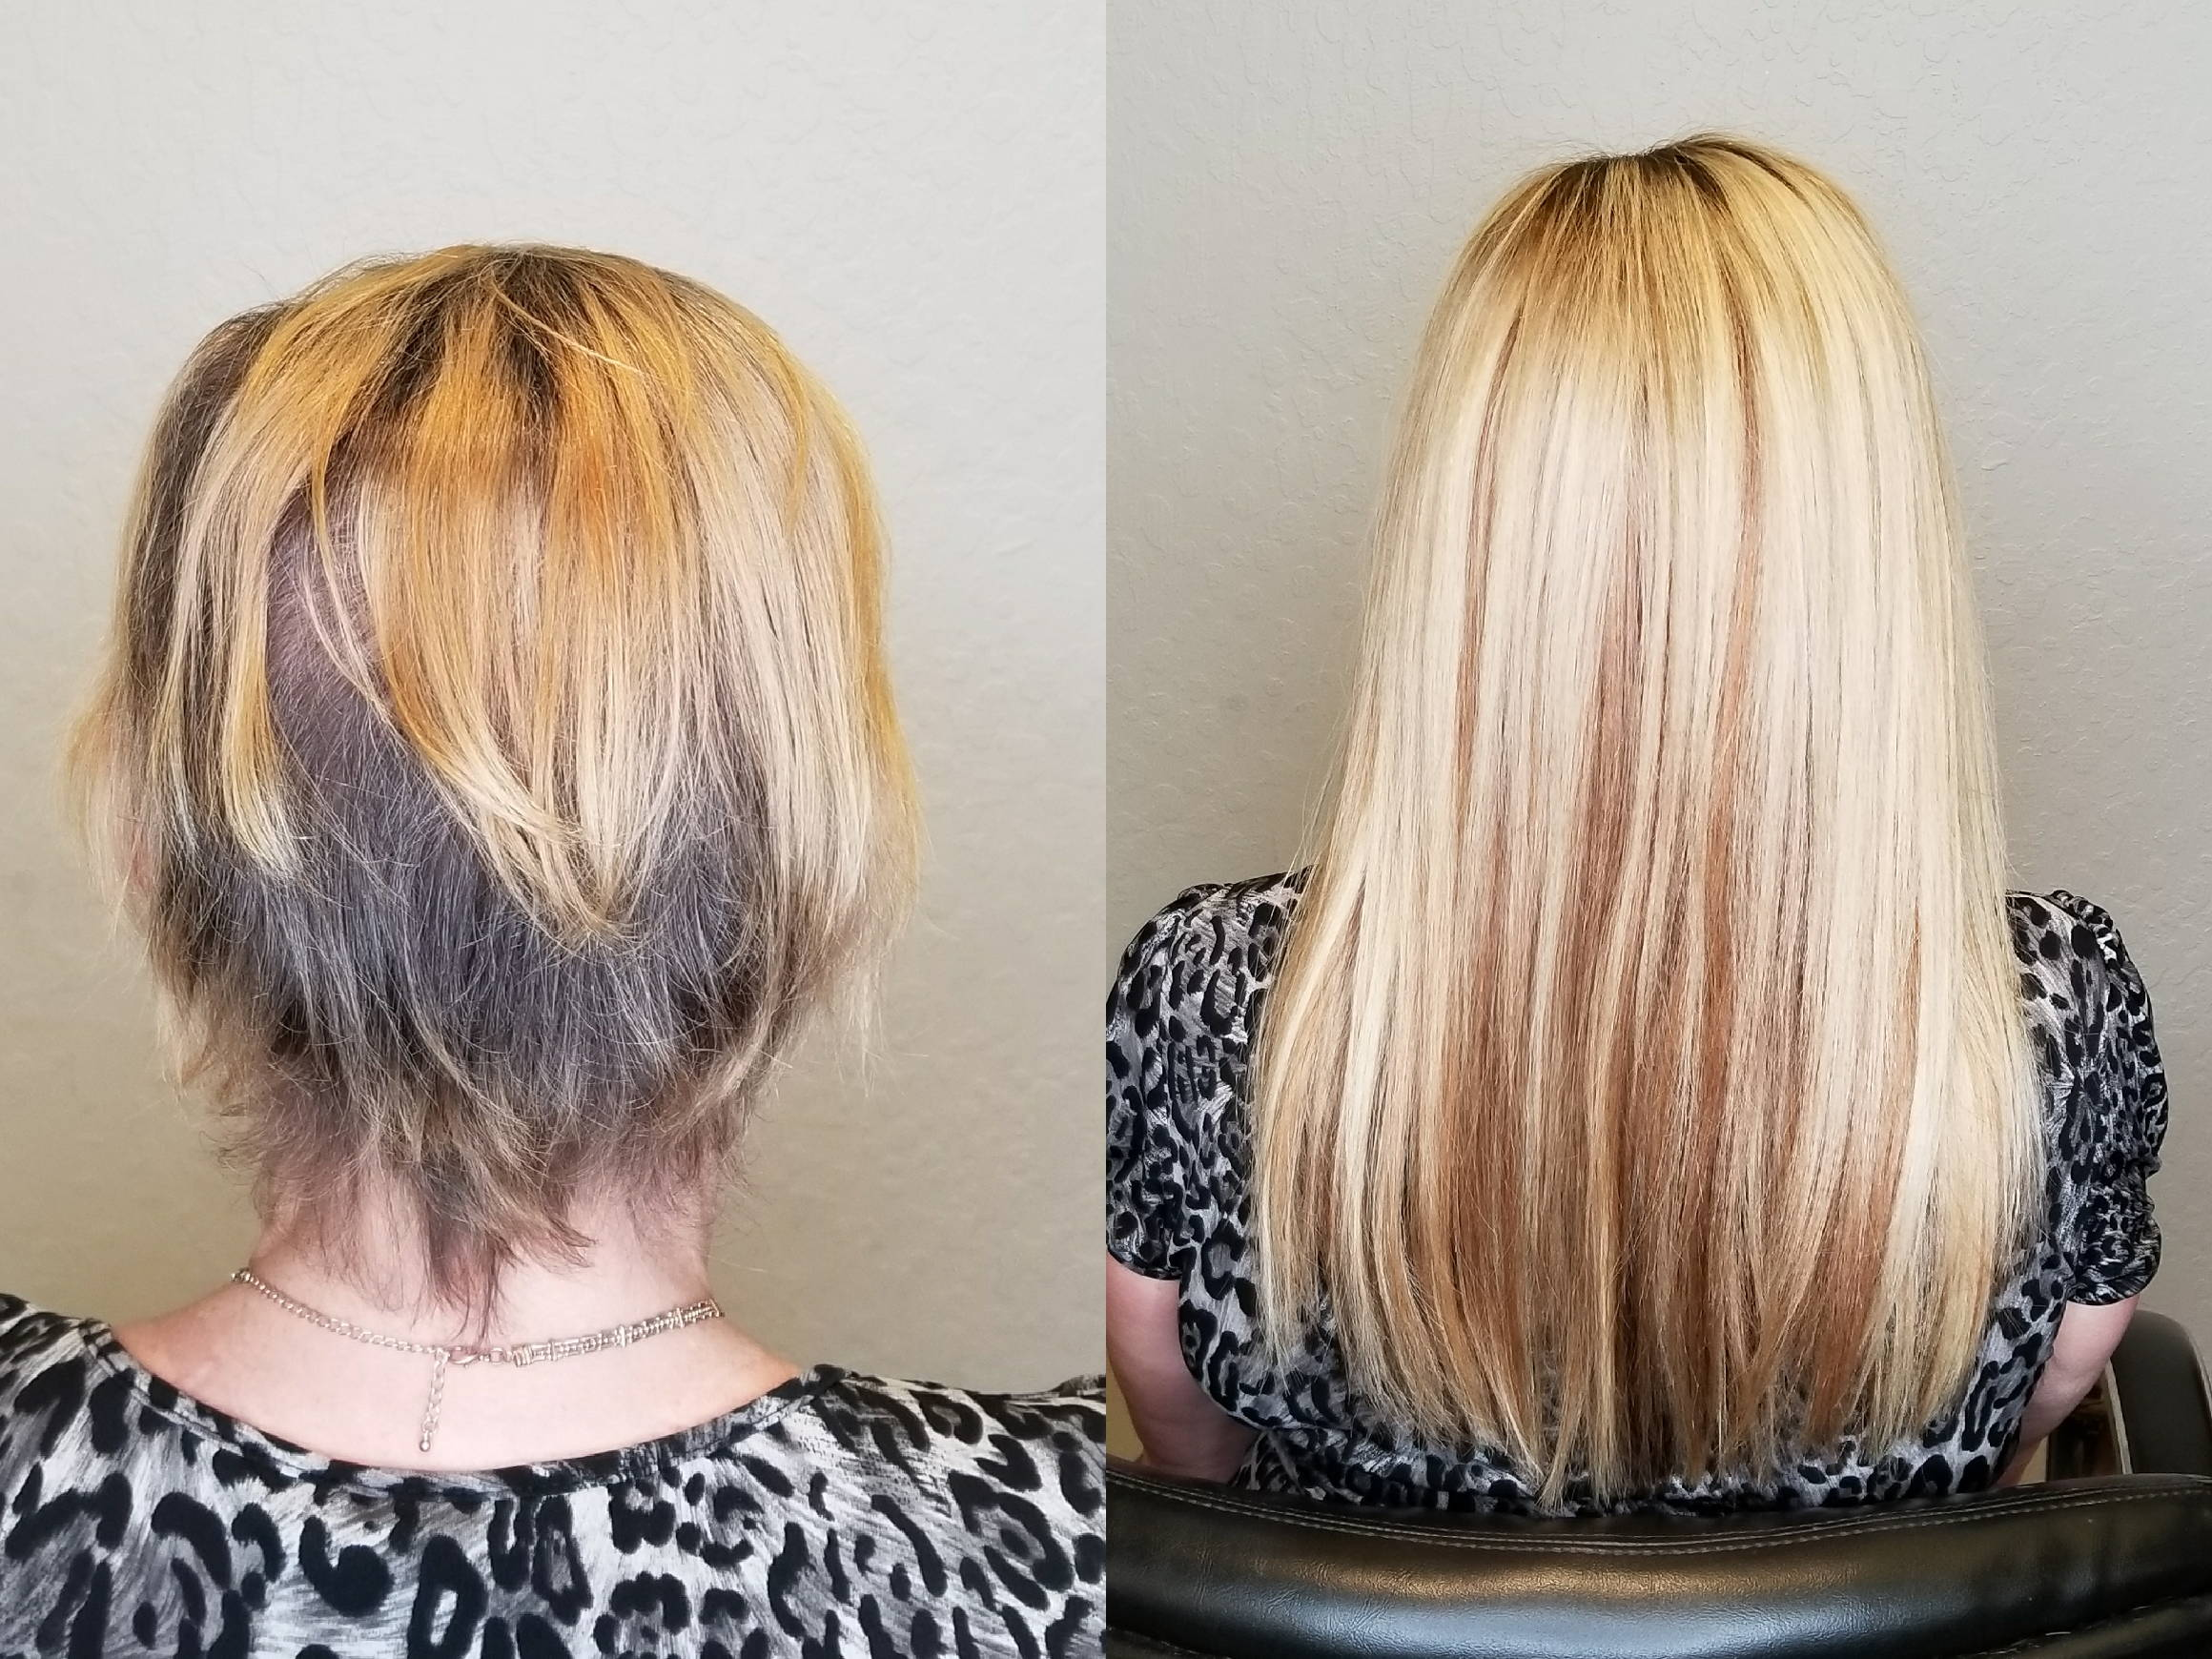 before and after hair replacement procedure with custom hair piece blonde woman